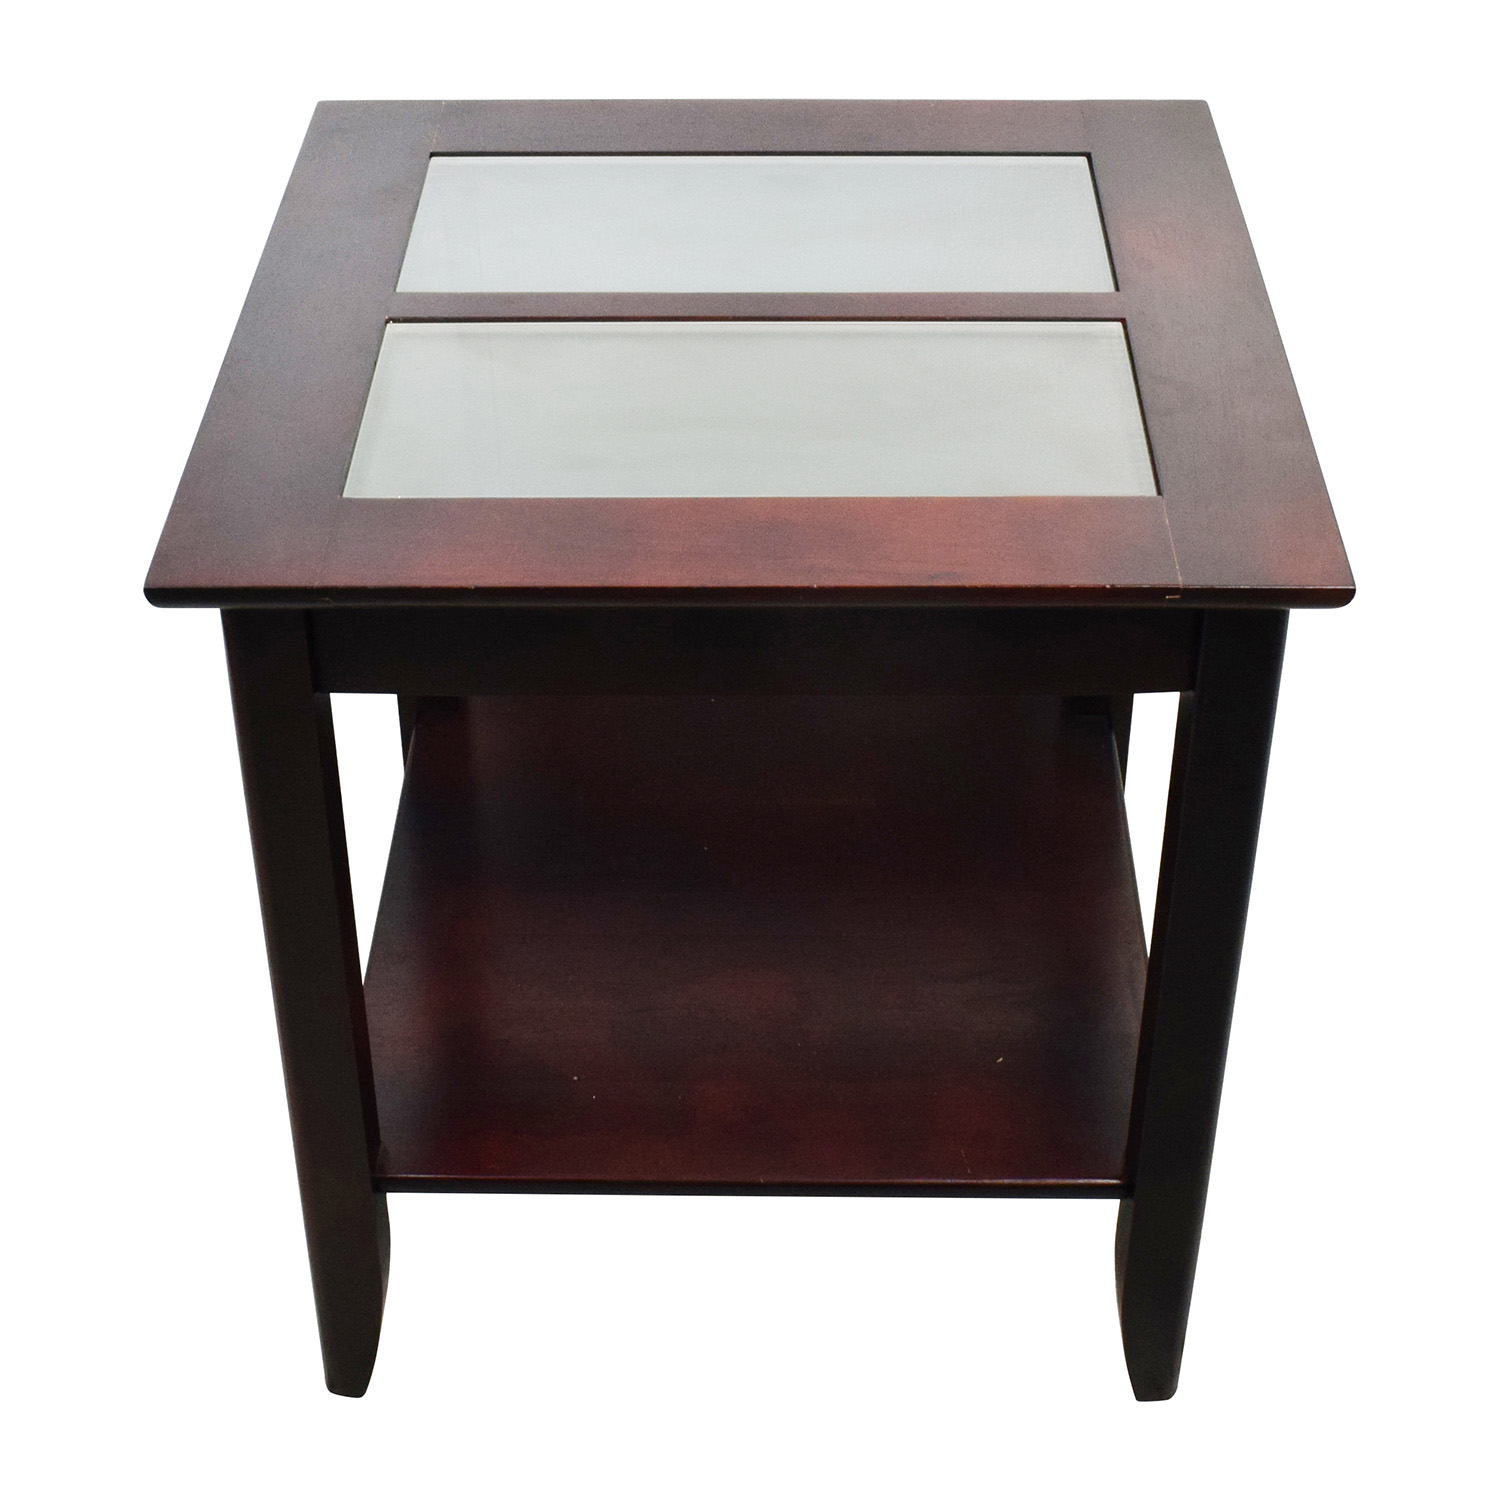 off target glass and wood coffee table tables furniture end nexera row companies uttermost accent black metal inch nightstand gray pillows brown couch folding high top whalen